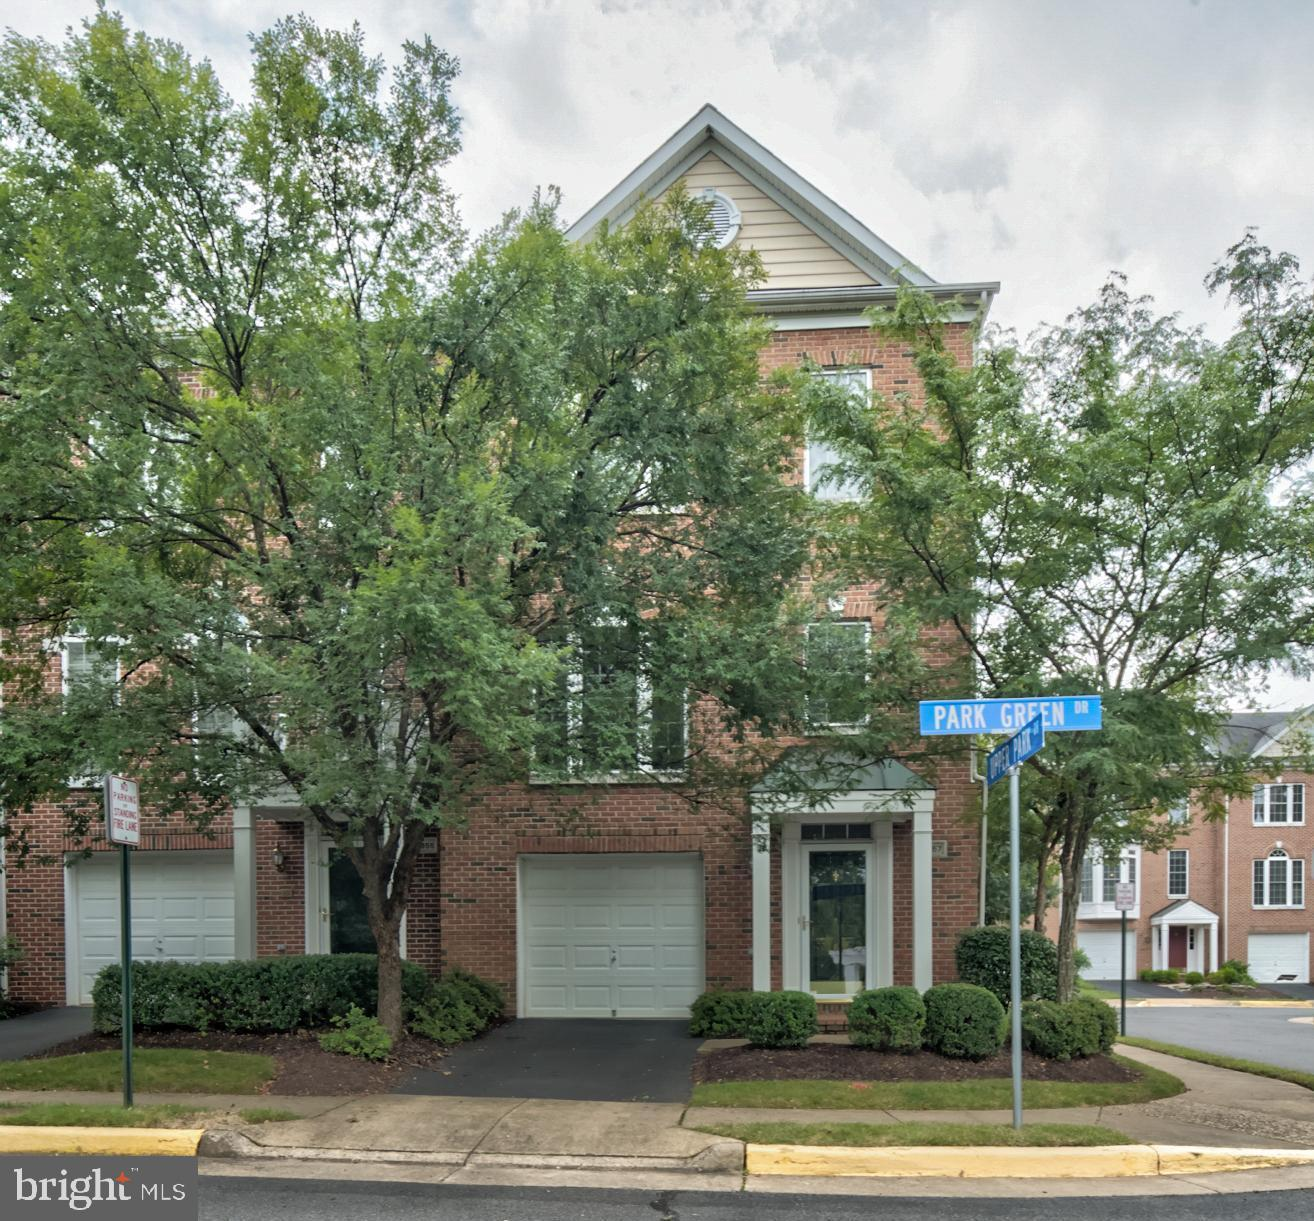 11657 PARK GREEN Dr, Fairfax, VA, 22030